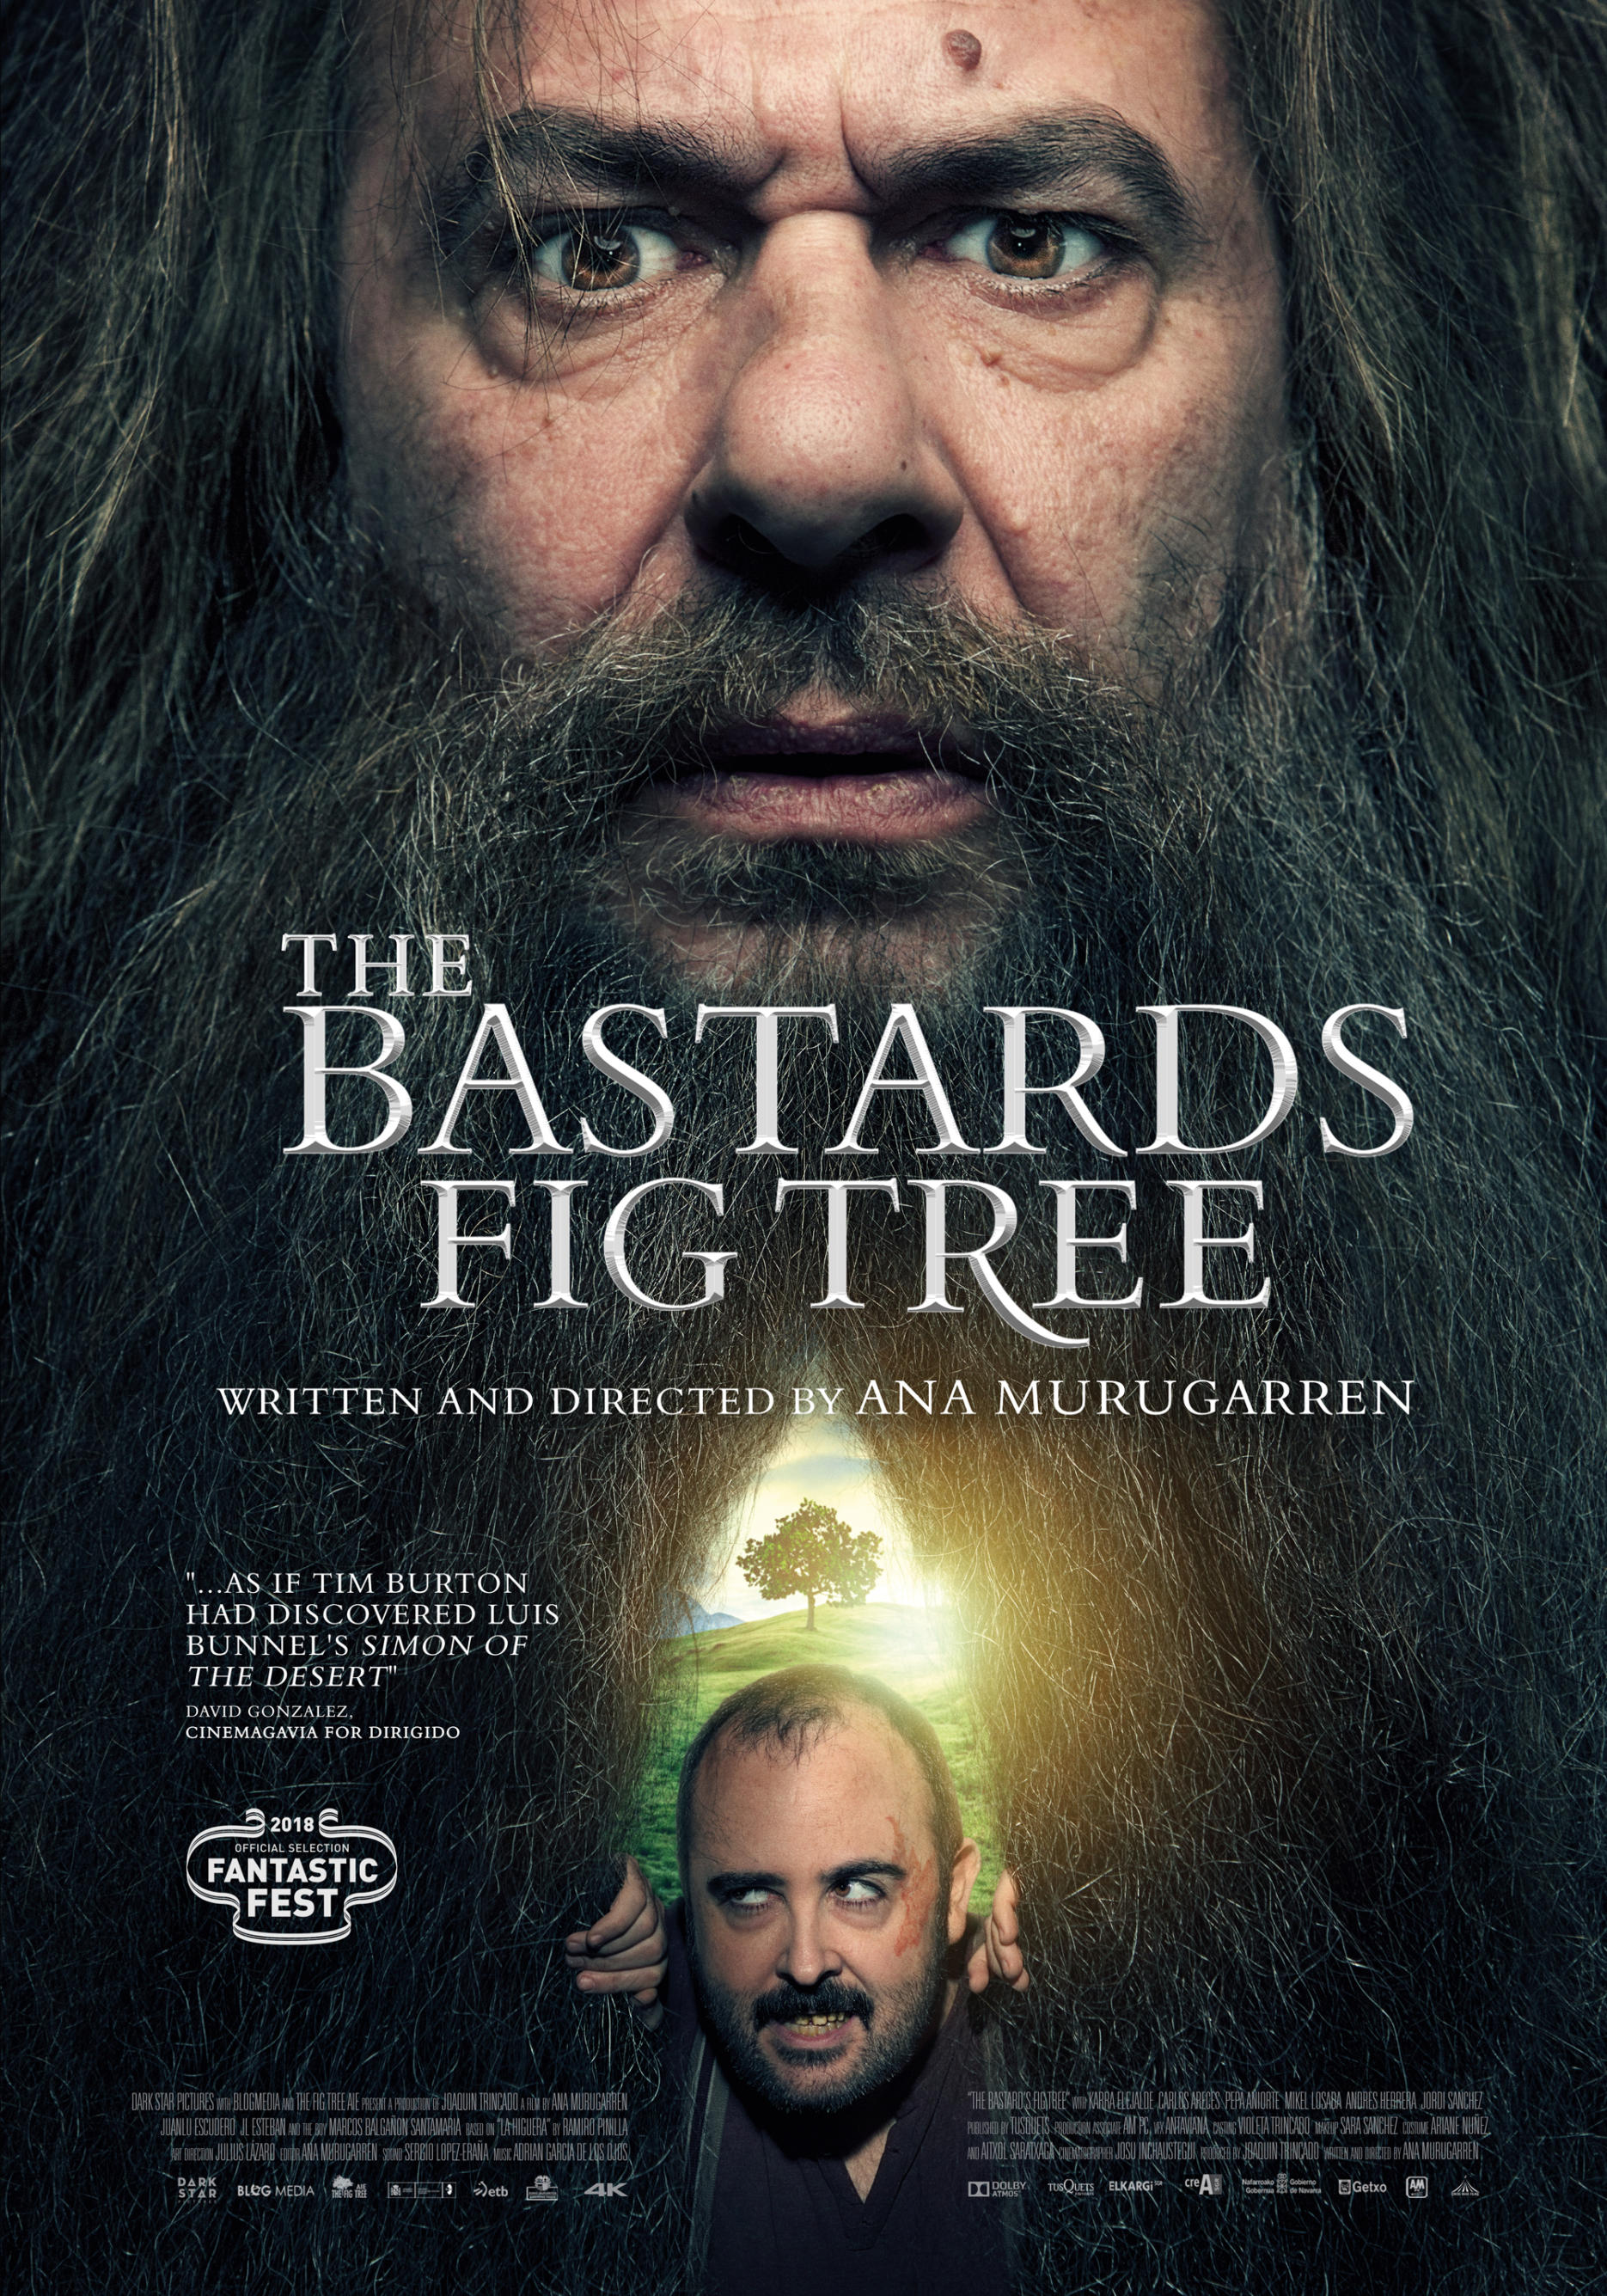 In the tradition of PAN'S LABYRINTH, Spanish fantasy THE BASTARDS